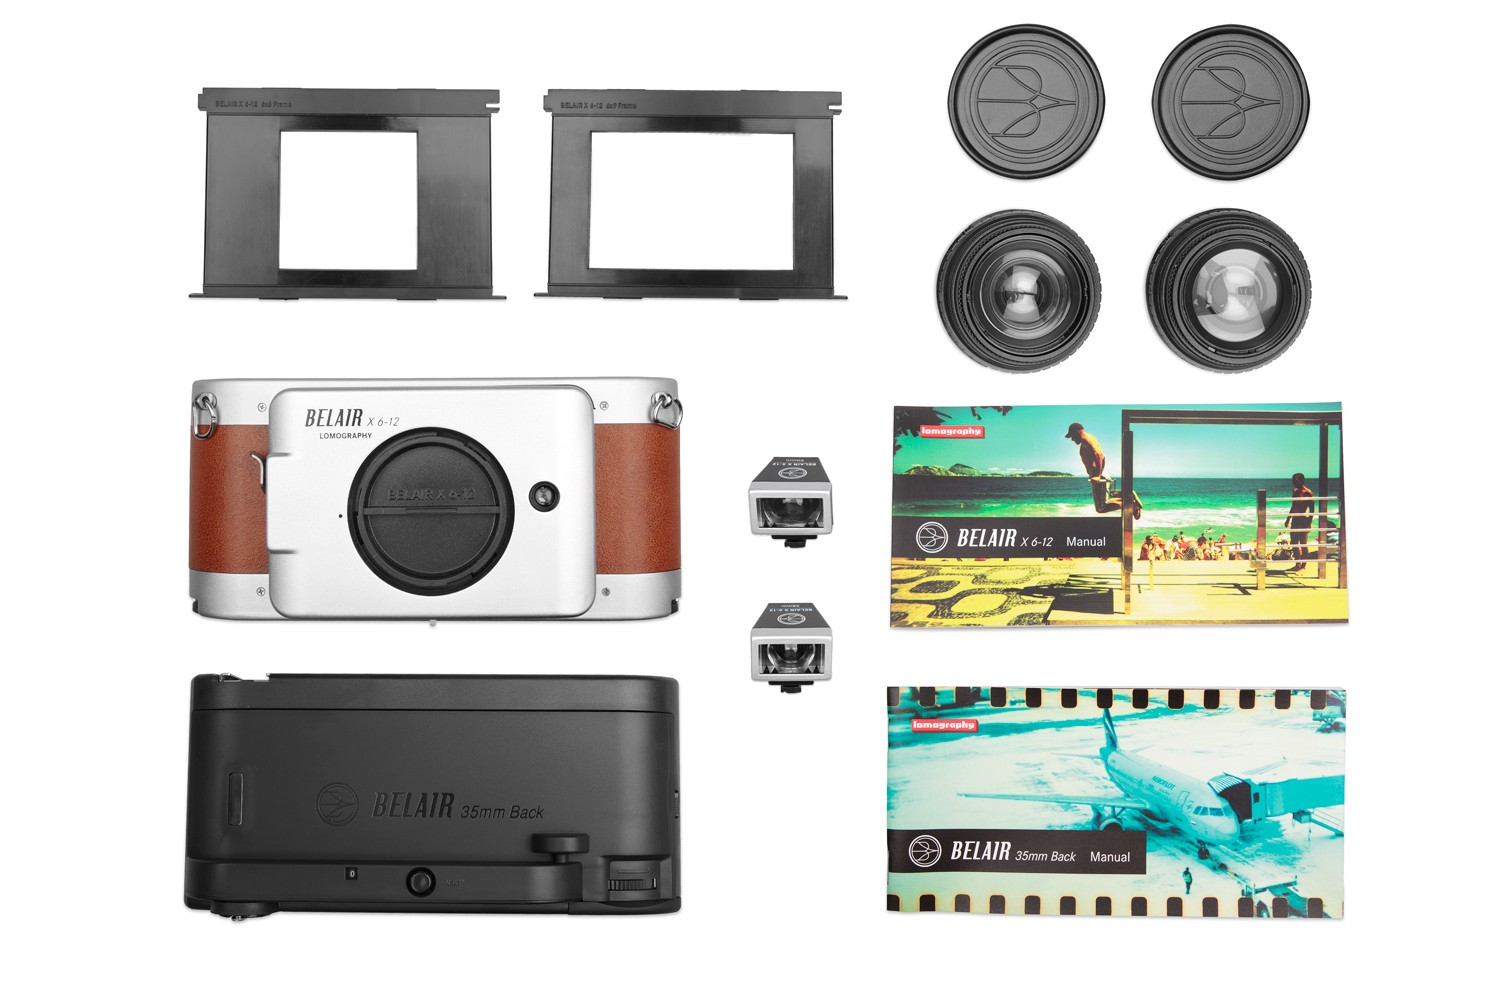 Belair X 6-12 Jetsetter Middenformaat Camera Deluxe Kit